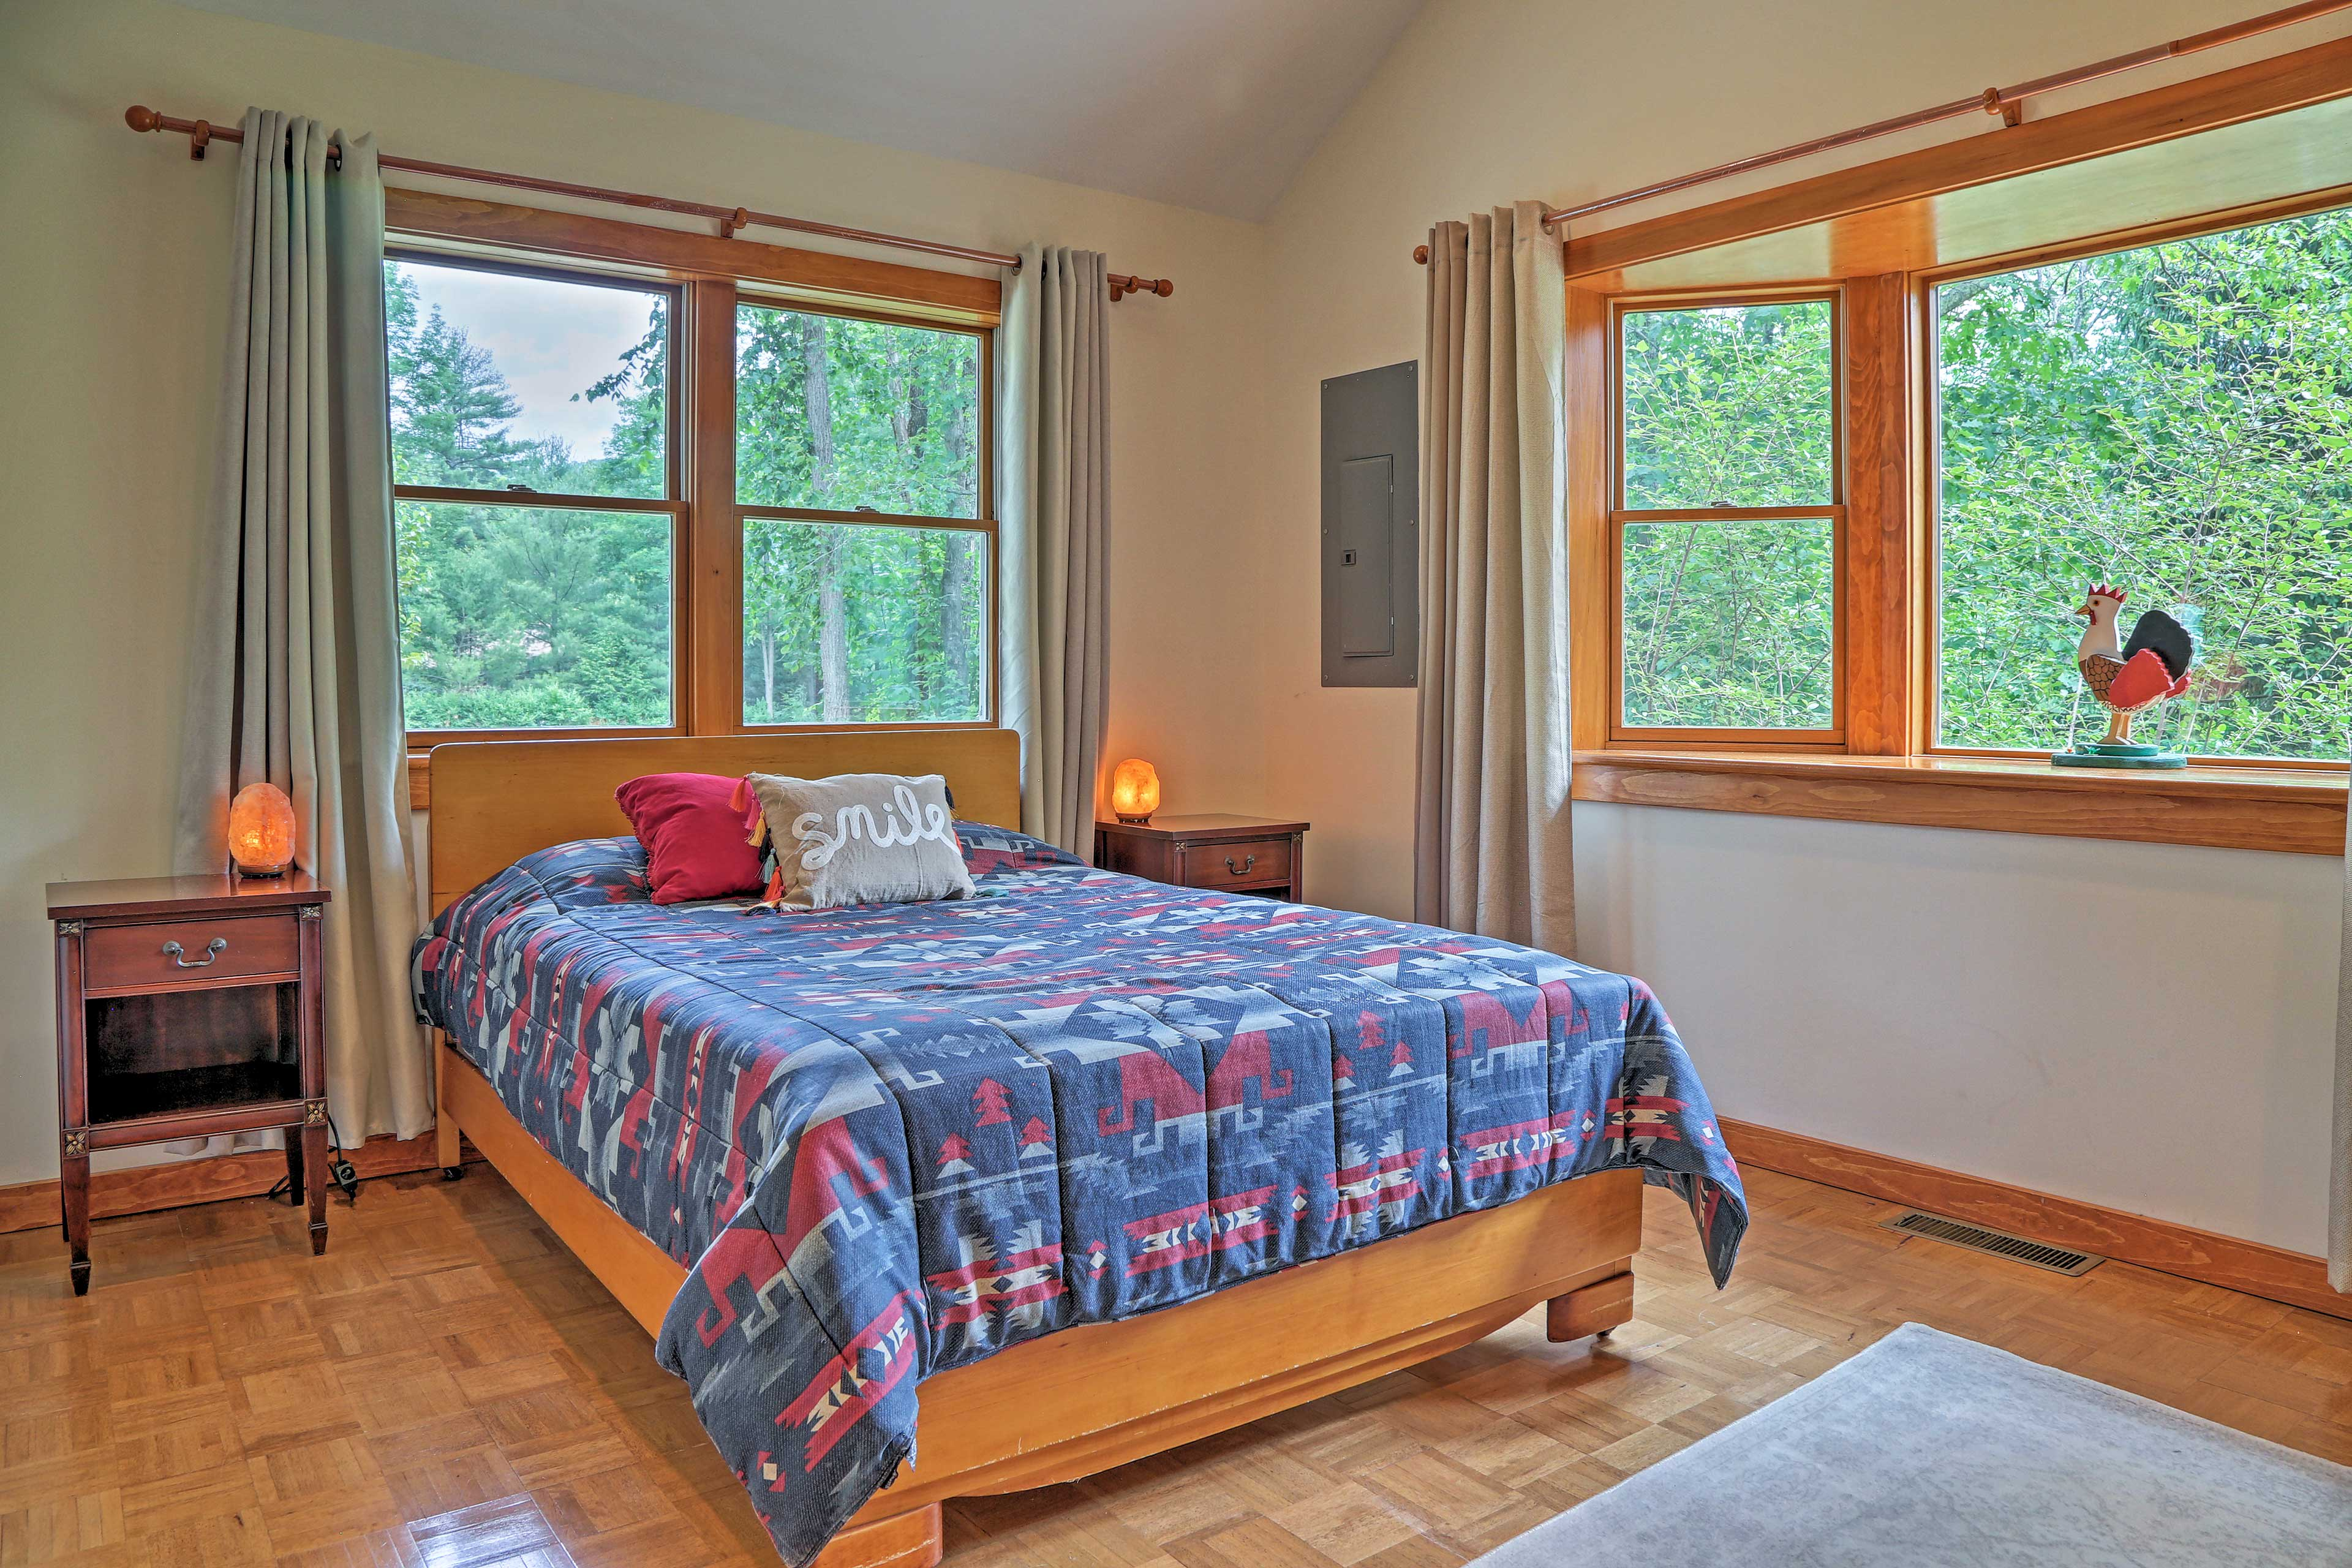 The second bedroom houses a cozy queen bed.